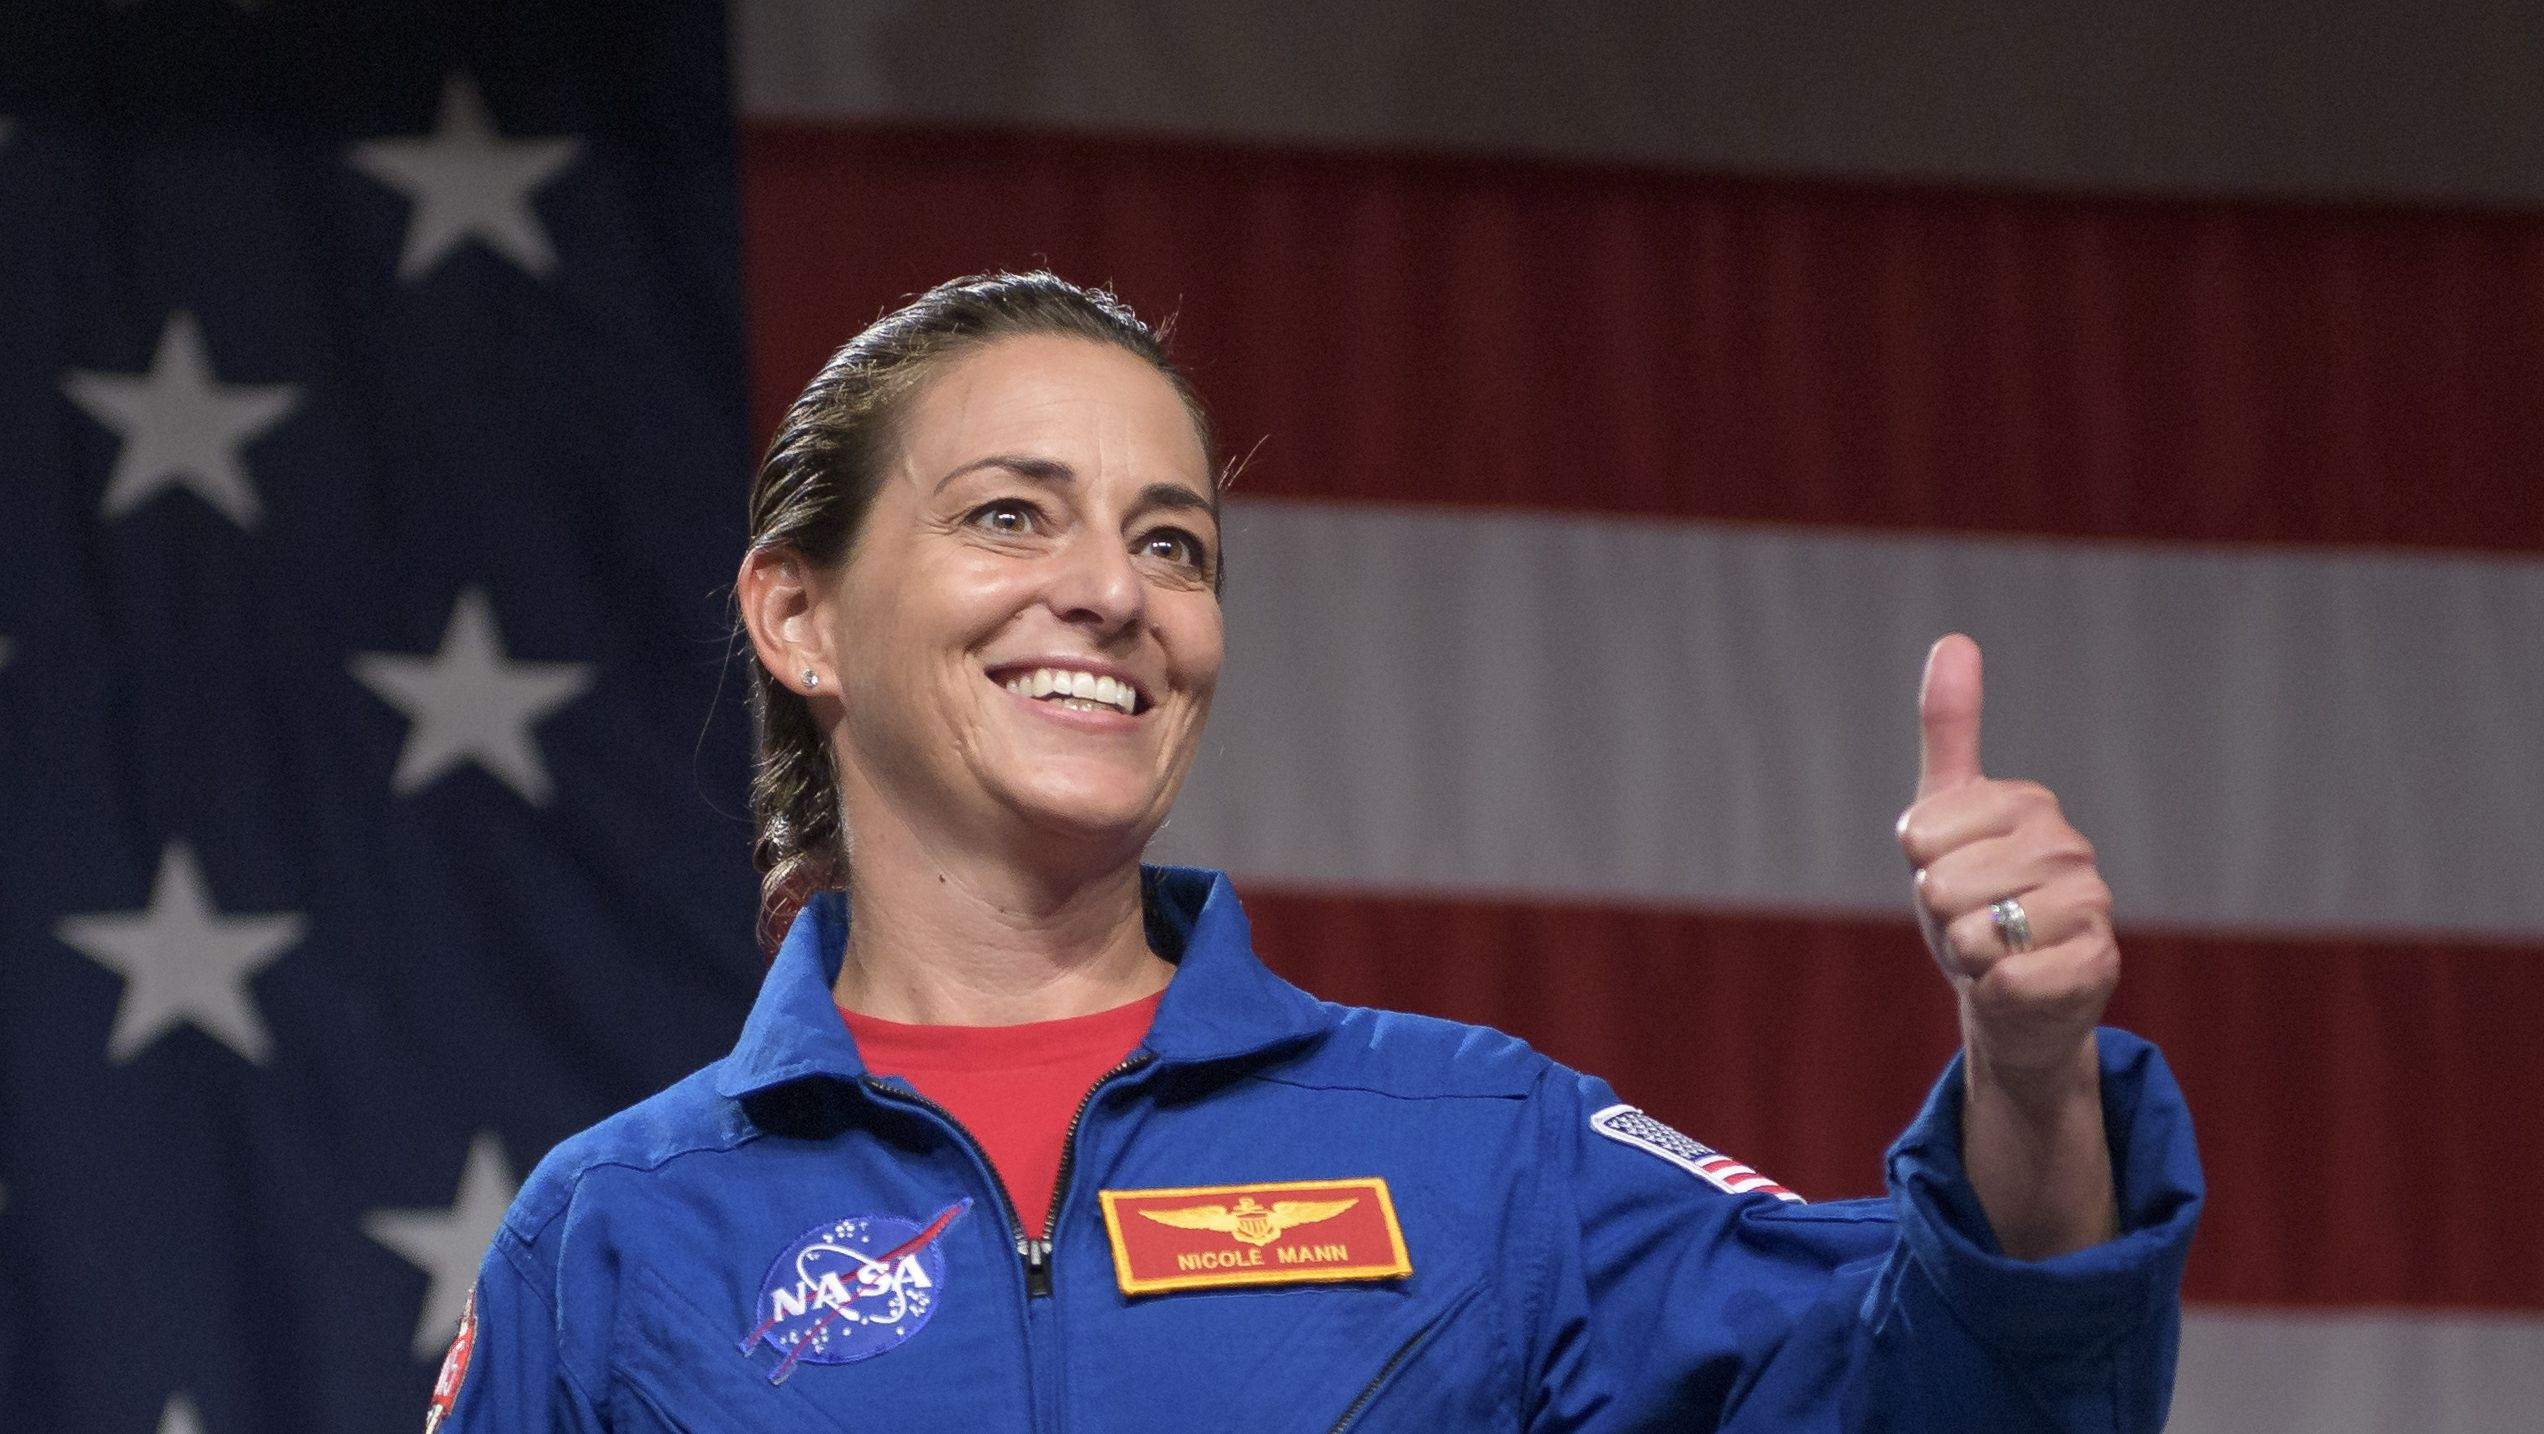 First Person on Mars Will Likely be a Woman, Says NASA Boss